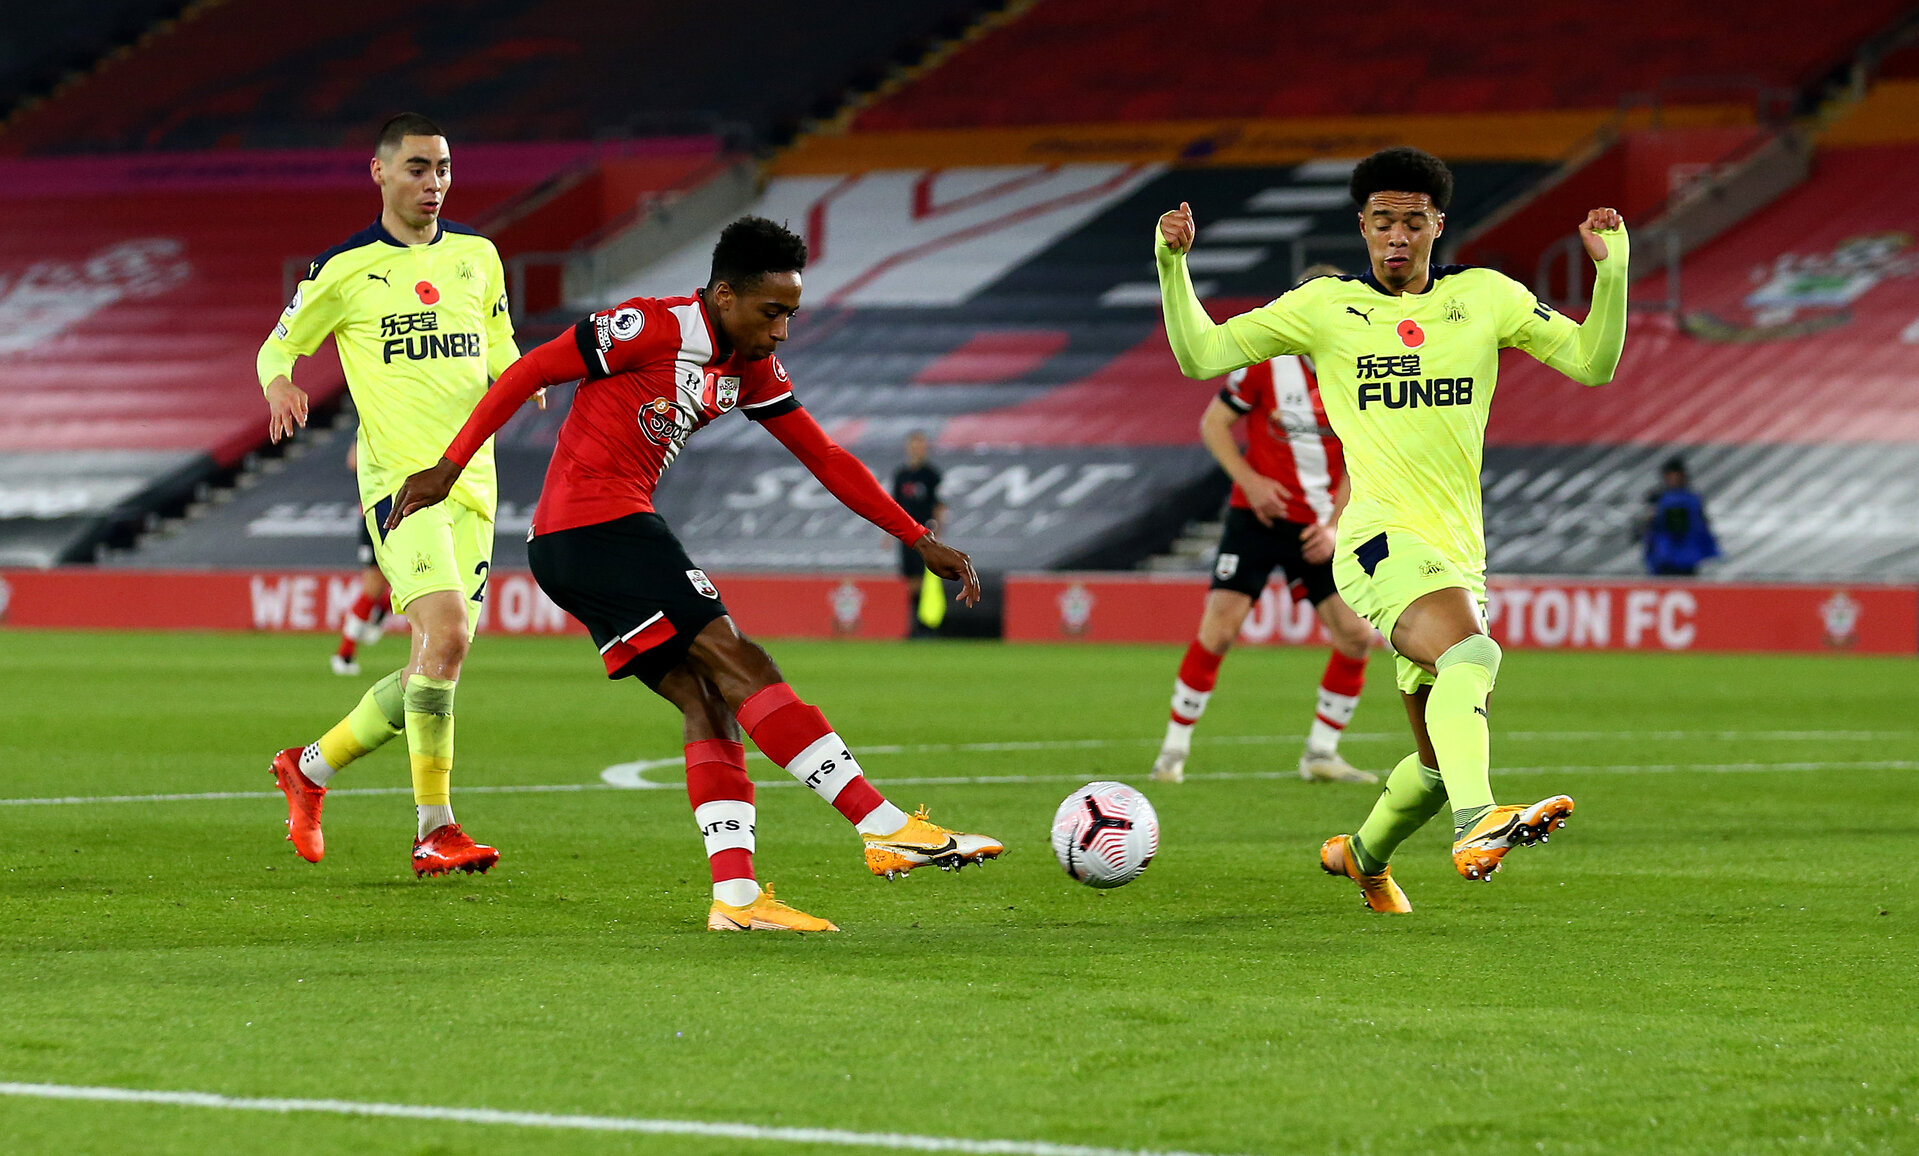 SOUTHAMPTON, ENGLAND - NOVEMBER 06: Kyle Walker-Peters of Southampton shoots at goal during the Premier League match between Southampton and Newcastle United at St Mary's Stadium on November 06, 2020 in Southampton, England. Sporting stadiums around the UK remain under strict restrictions due to the Coronavirus Pandemic as Government social distancing laws prohibit fans inside venues resulting in games being played behind closed doors. (Photo by Matt Watson/Southampton FC via Getty Images)